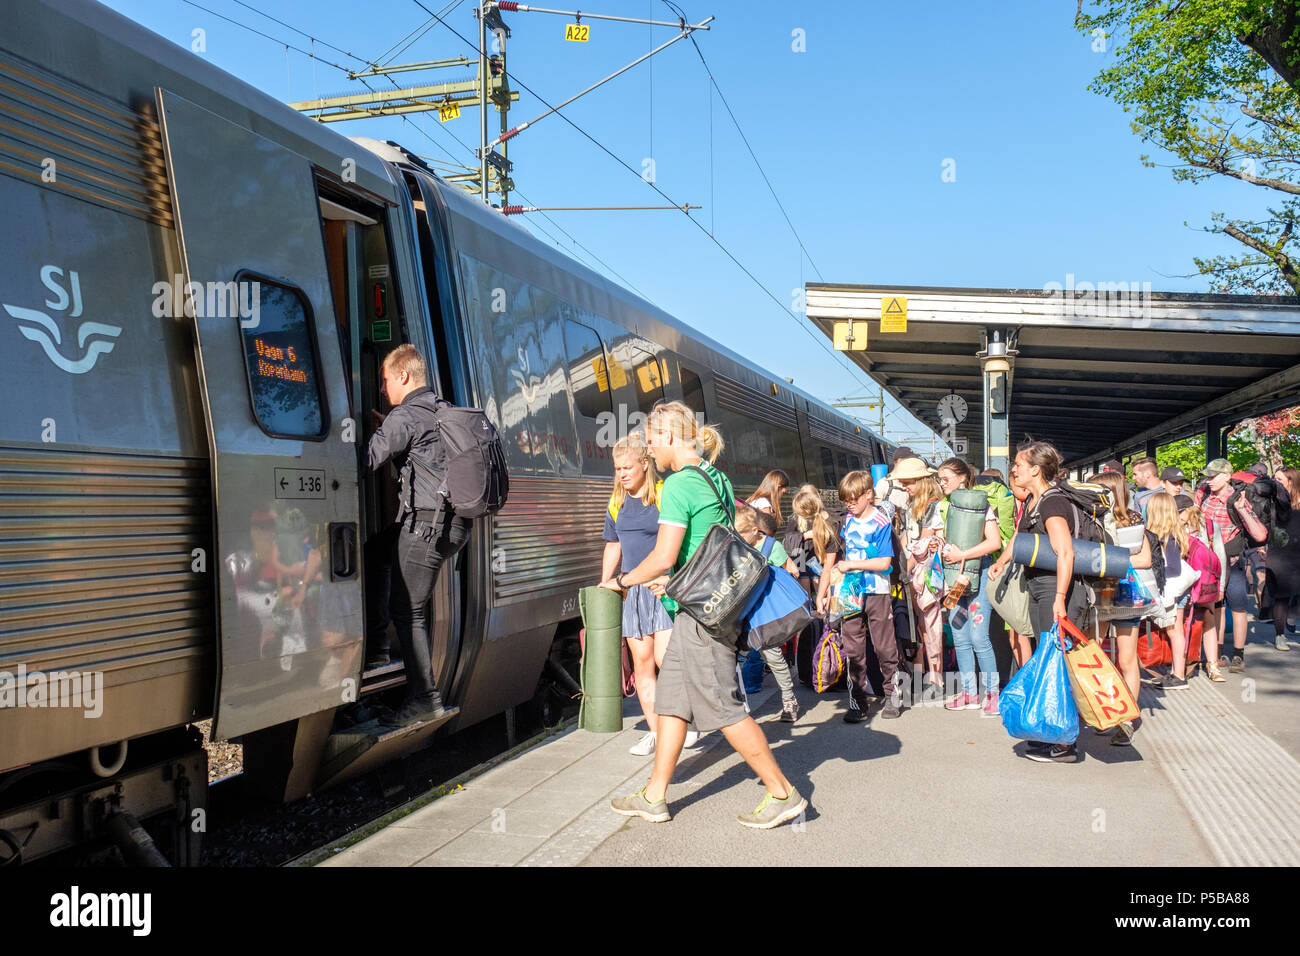 High-speed inter-city train between Stockholm and Copenhagen stopping at Norrkoping Central Station. - Stock Image